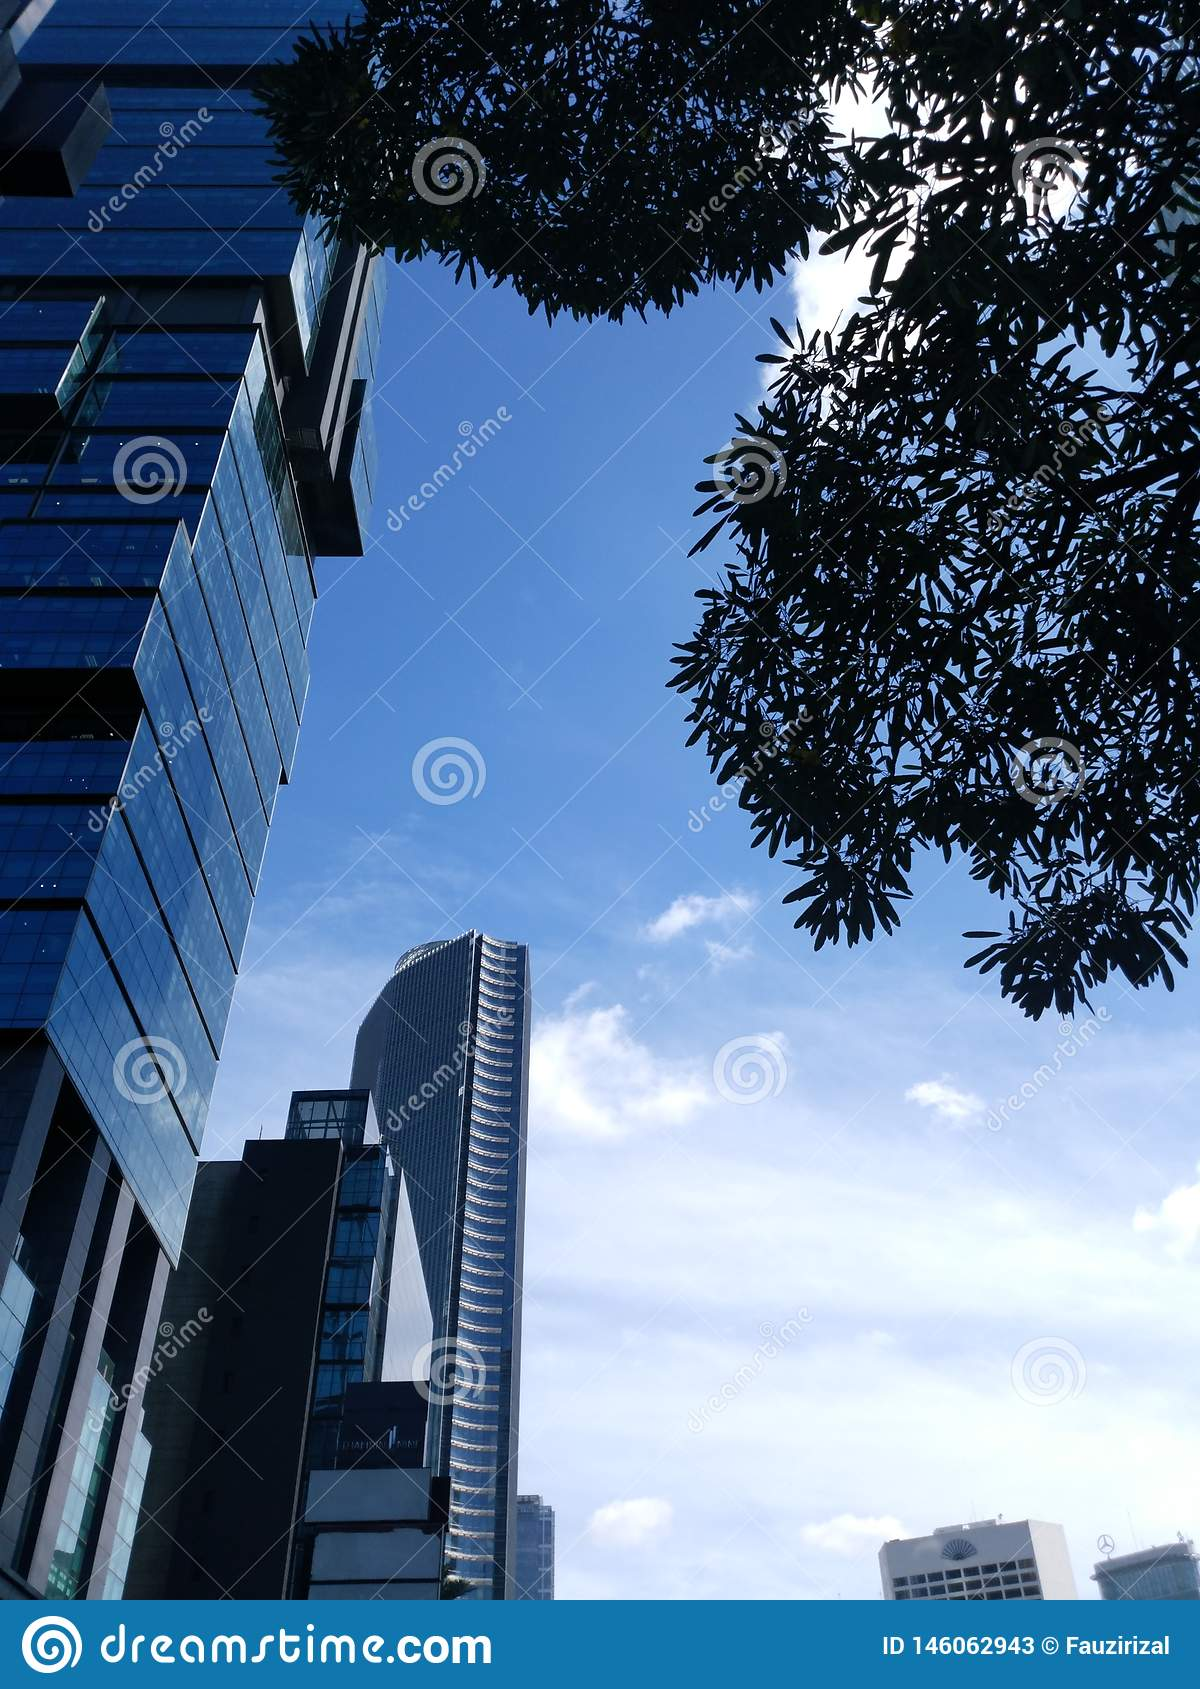 Jakarta building view in the City. Morning Blue sky and many clouds with tree as the foreground